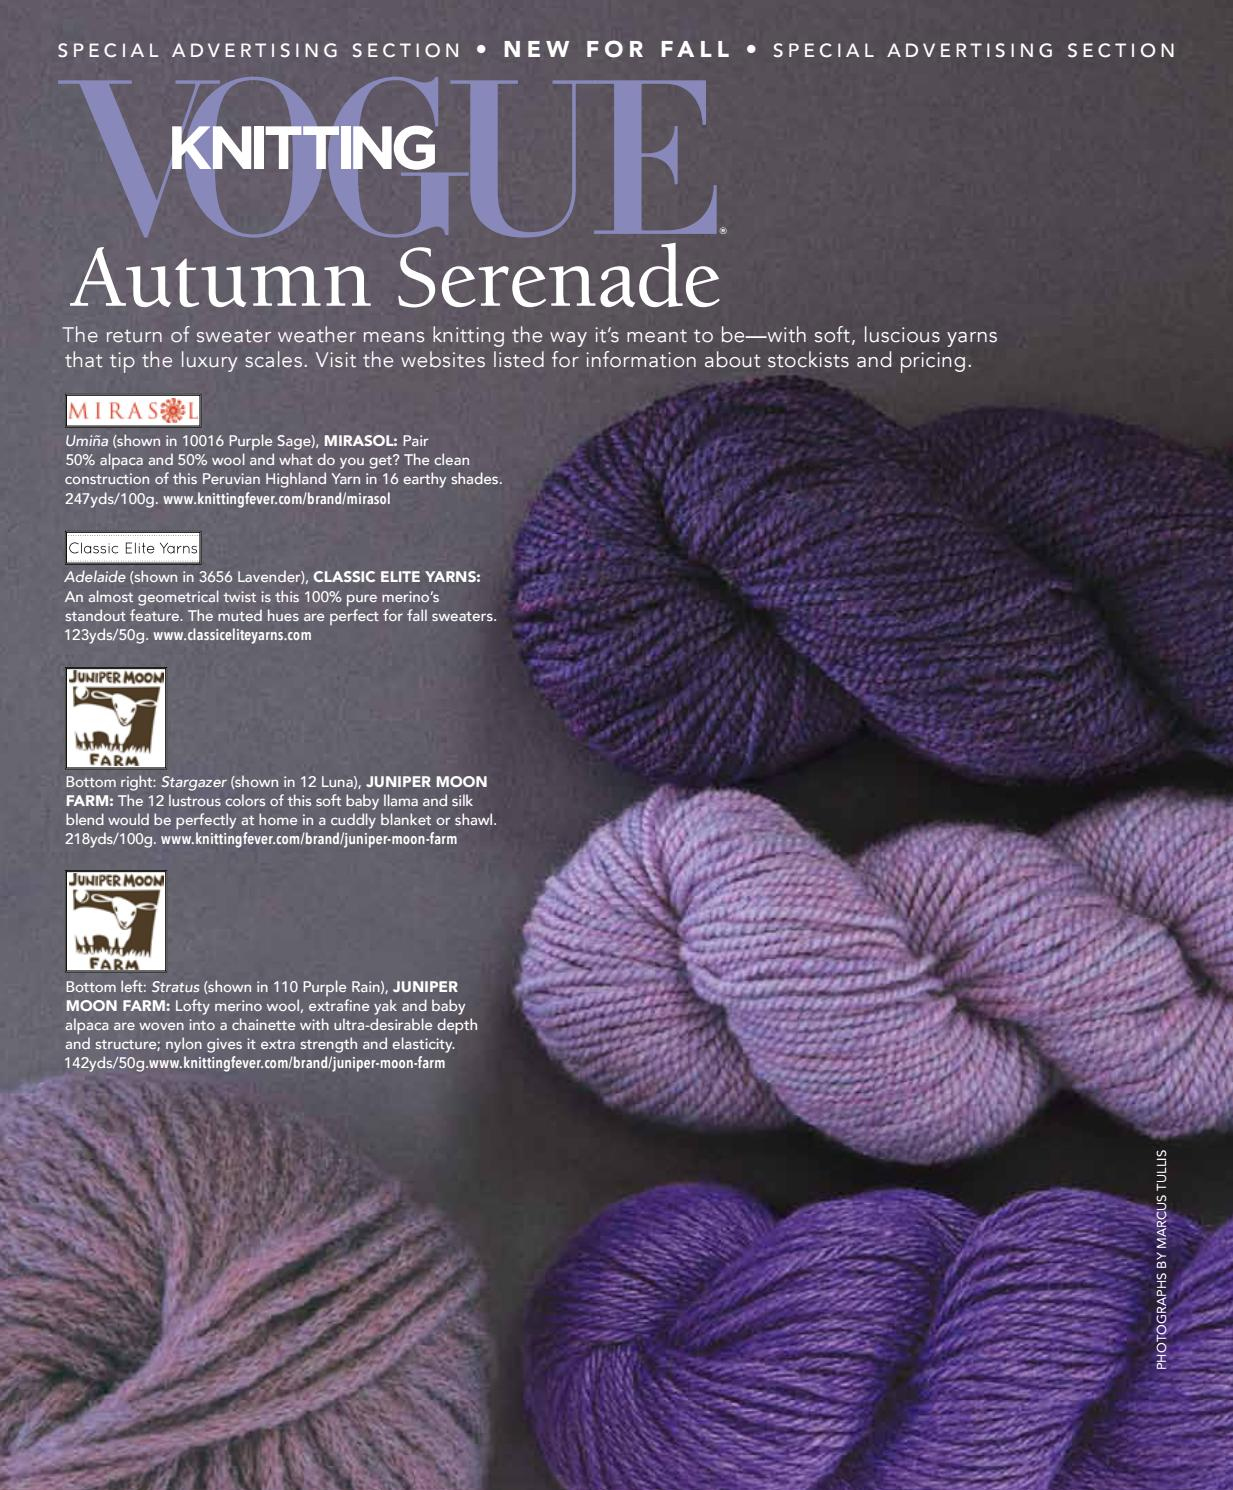 bc20abd988d2 Vogue knitting yarn advetorial 2016 by VogueKnitting - issuu